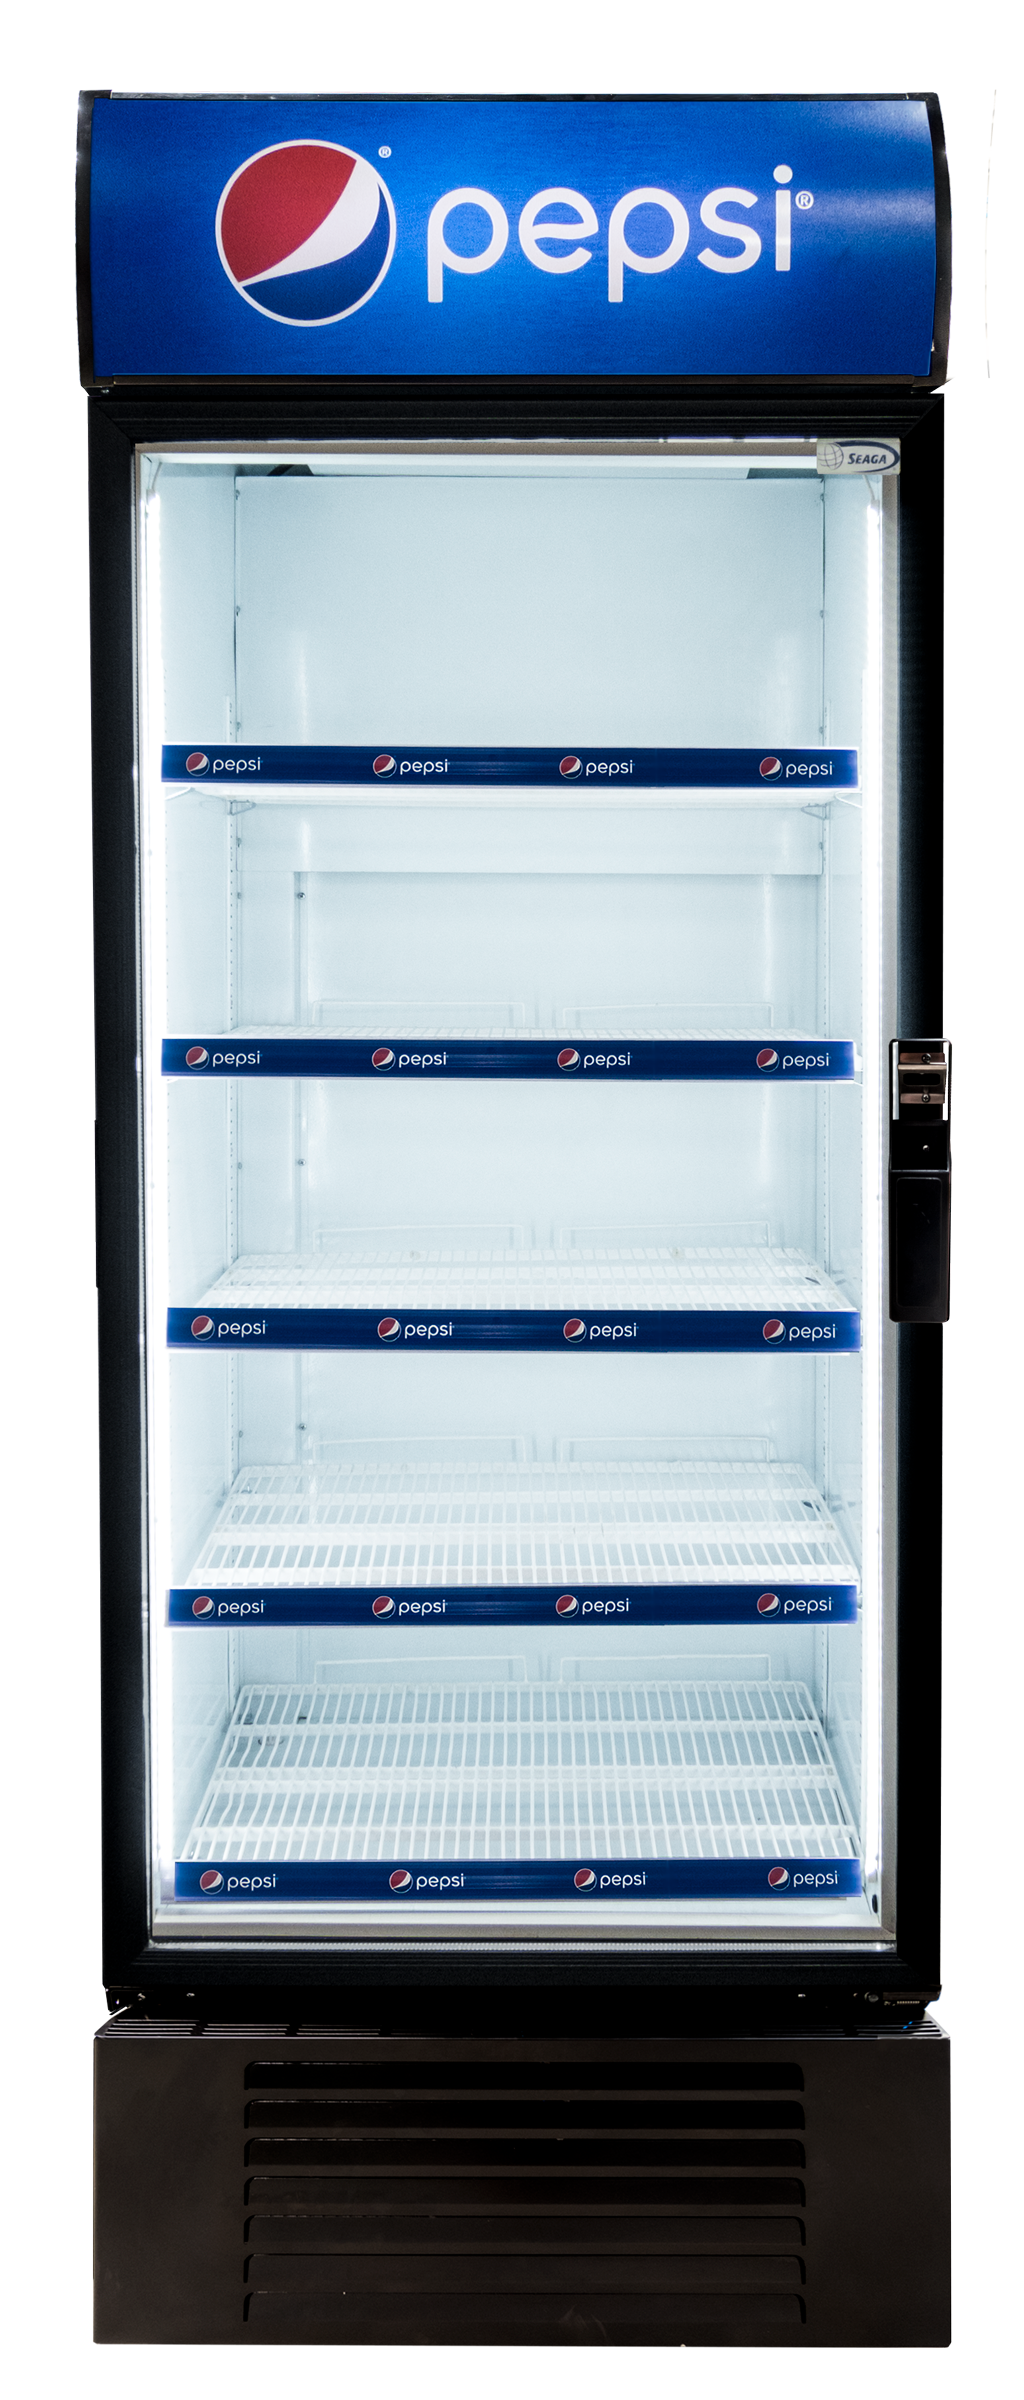 The S600 Glass Door Merchandiser offers proven innovative technology to ensure the best refrigeration and high visibility presentation of your items